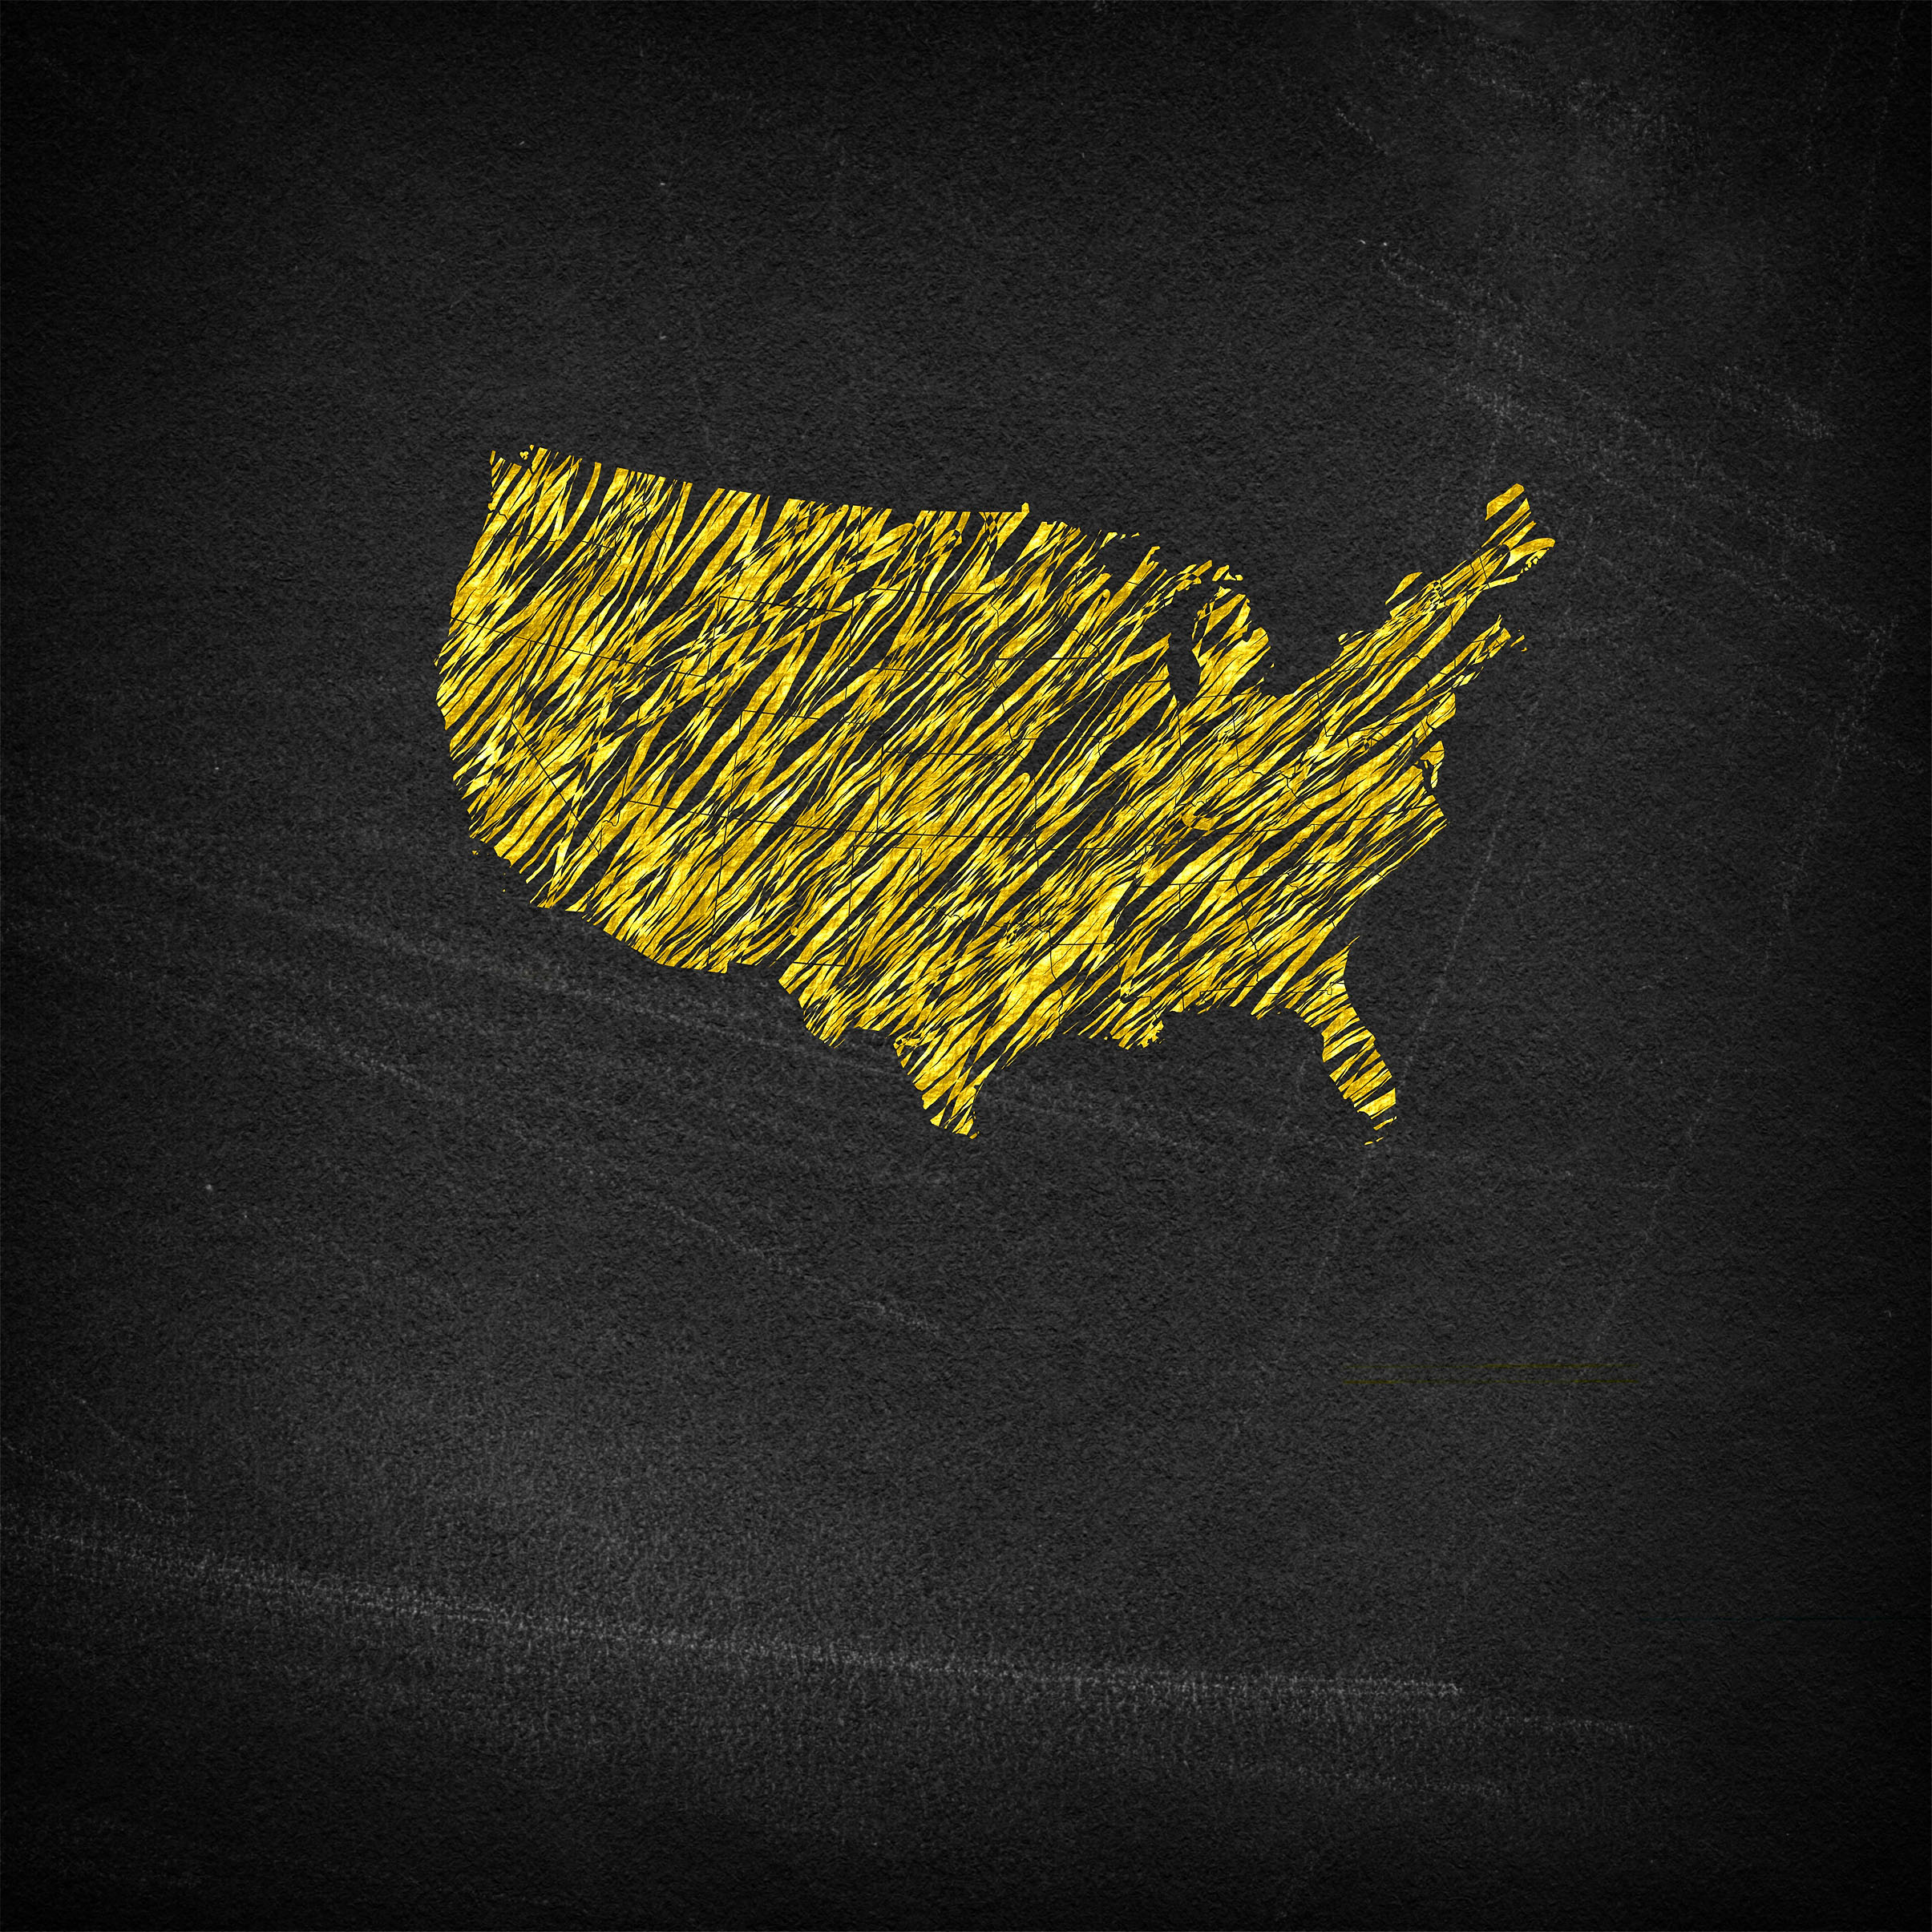 Main continental United States on chalkboard, Abstract, Outline, Shape, Shadow, HQ Photo